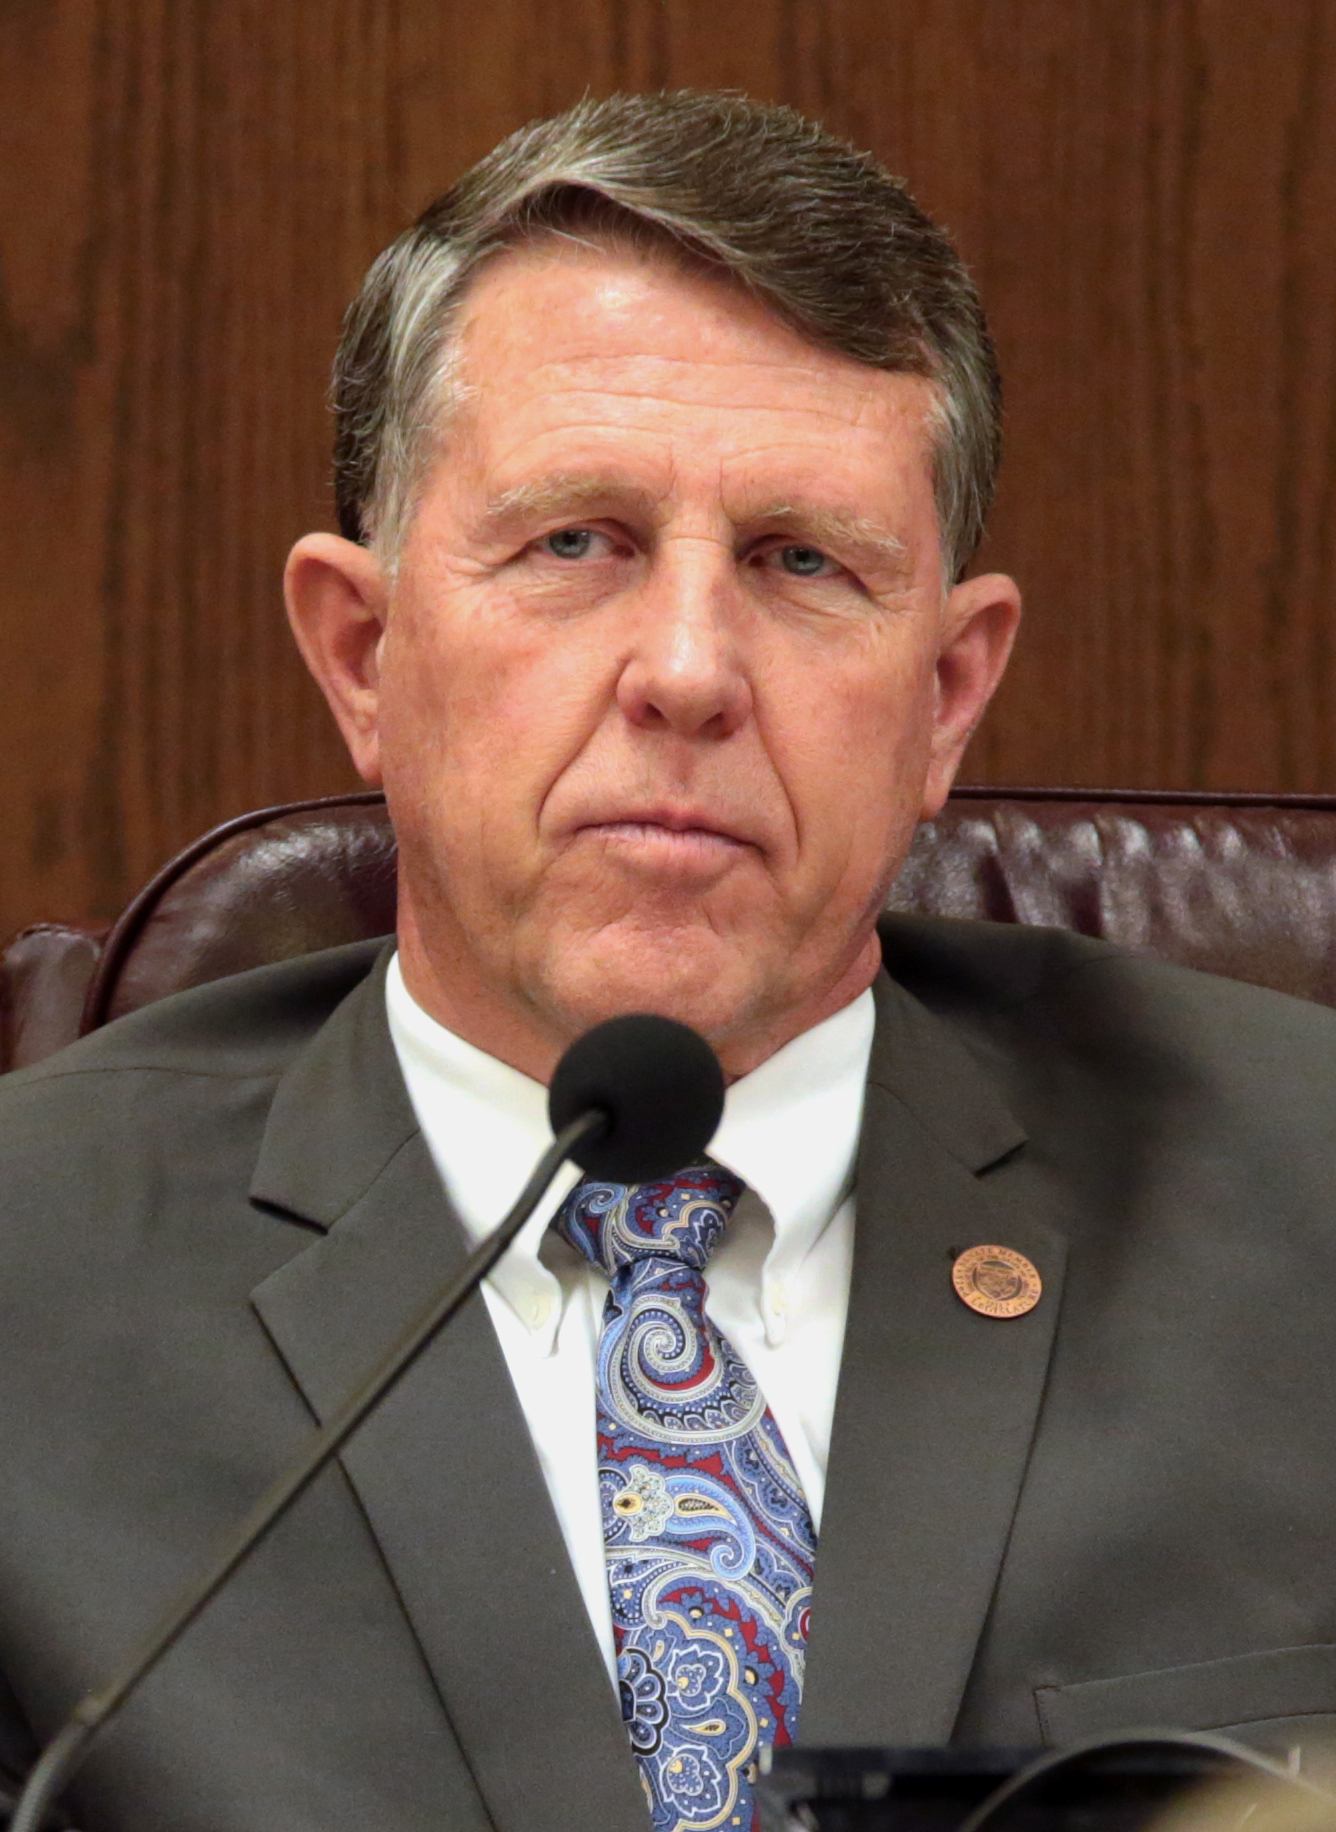 close-up color photo of Arizona state Sen. David C. Farnsworth of Mesa